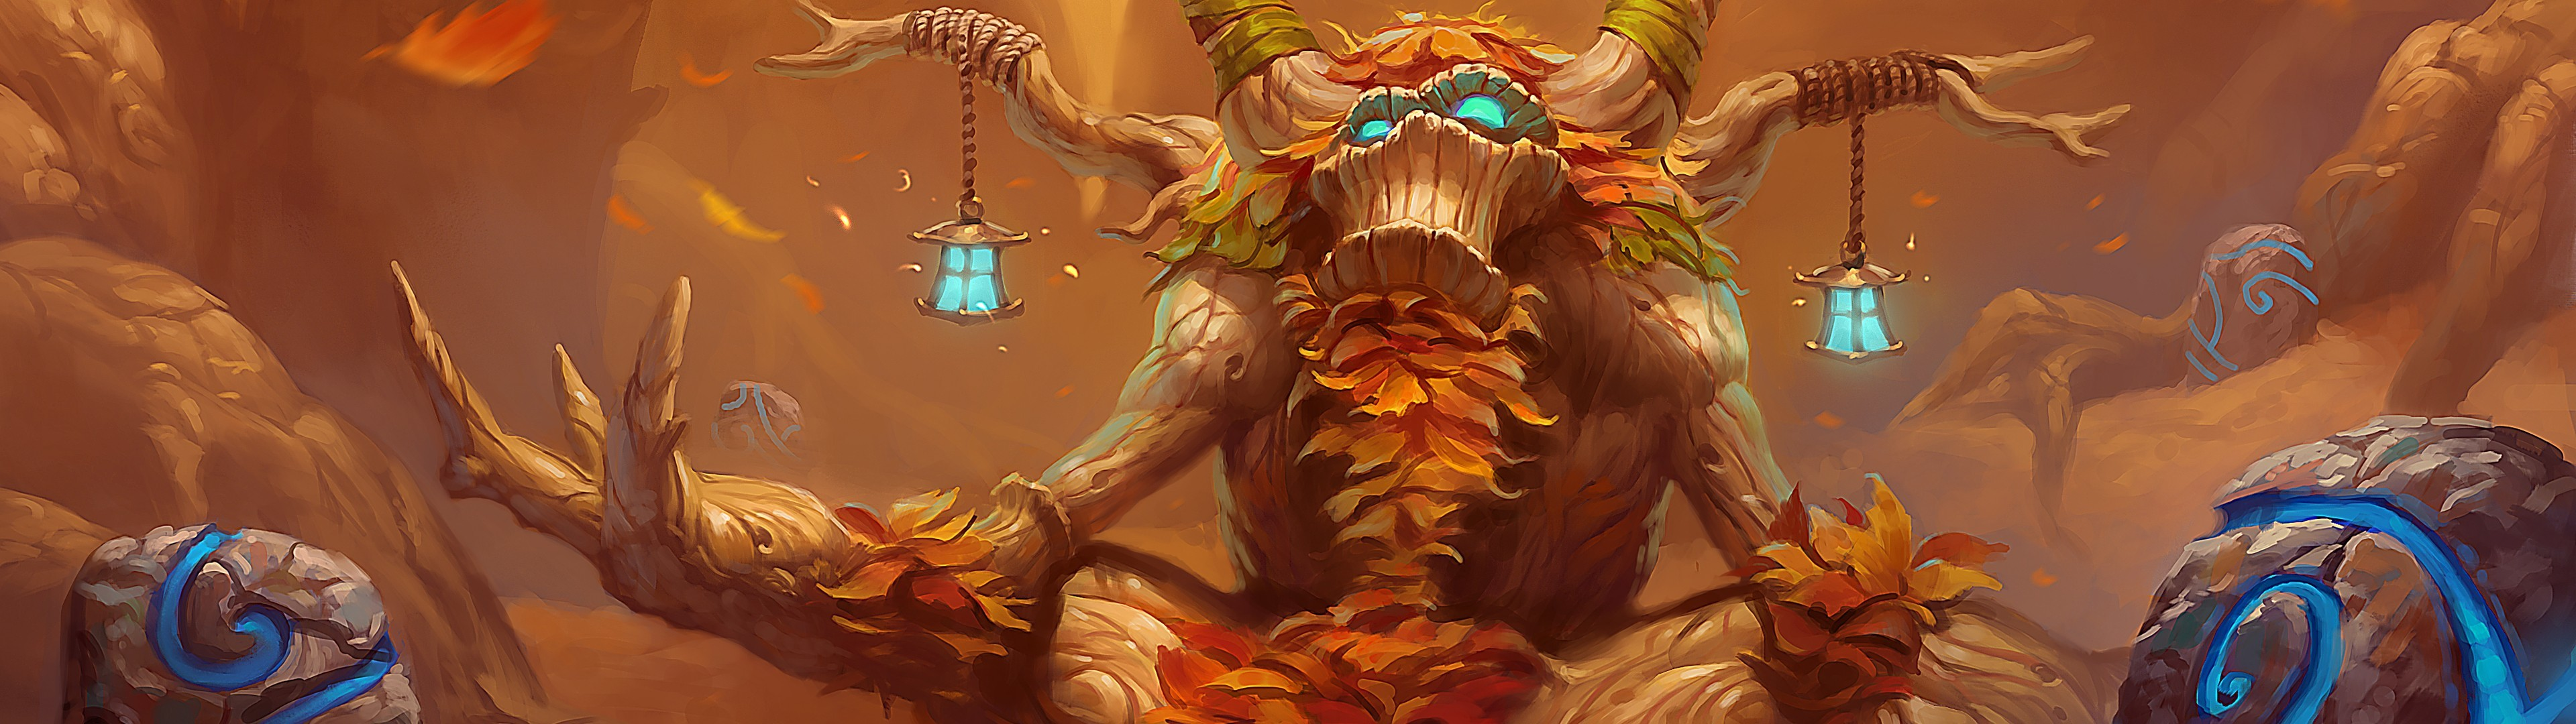 World of Warcraft, Druid, Mana tree, Dual monitors, Multiple display  Wallpapers HD / Desktop and Mobile Backgrounds